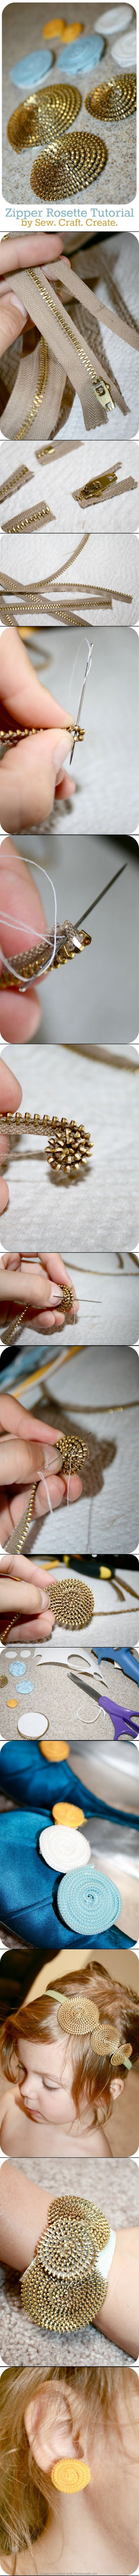 Zipper Rosette Tutorial                                                                                                                                                     Mais